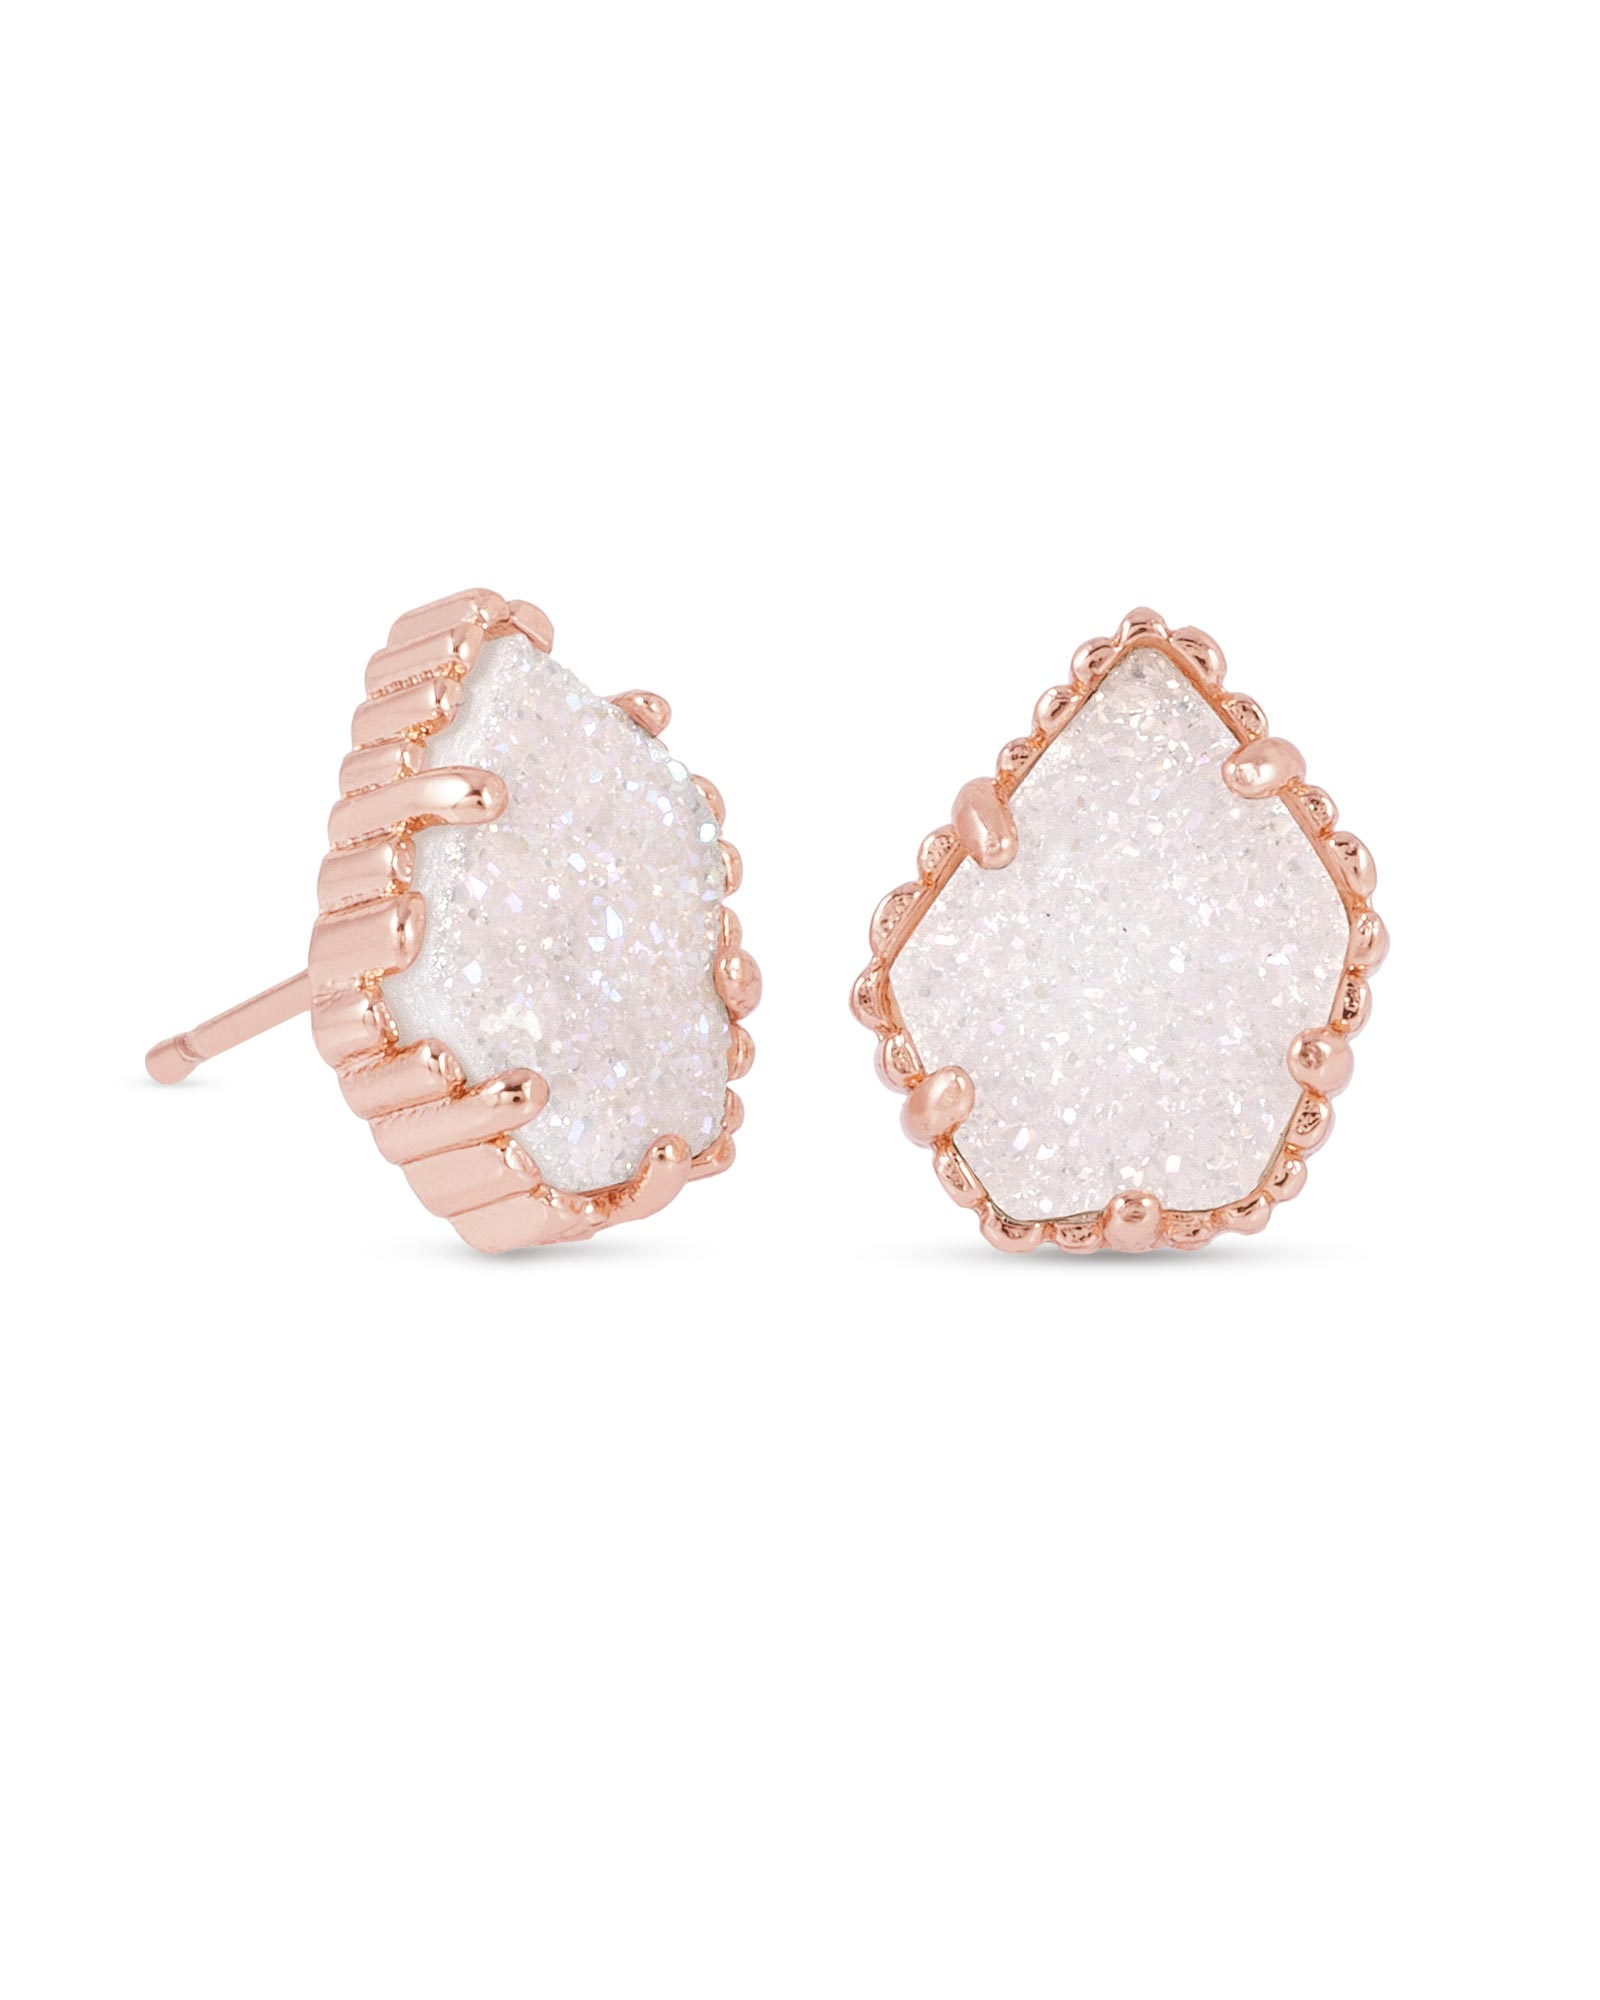 Tessa Rose Gold Stud Earrings in Iridescent Kendra Scott